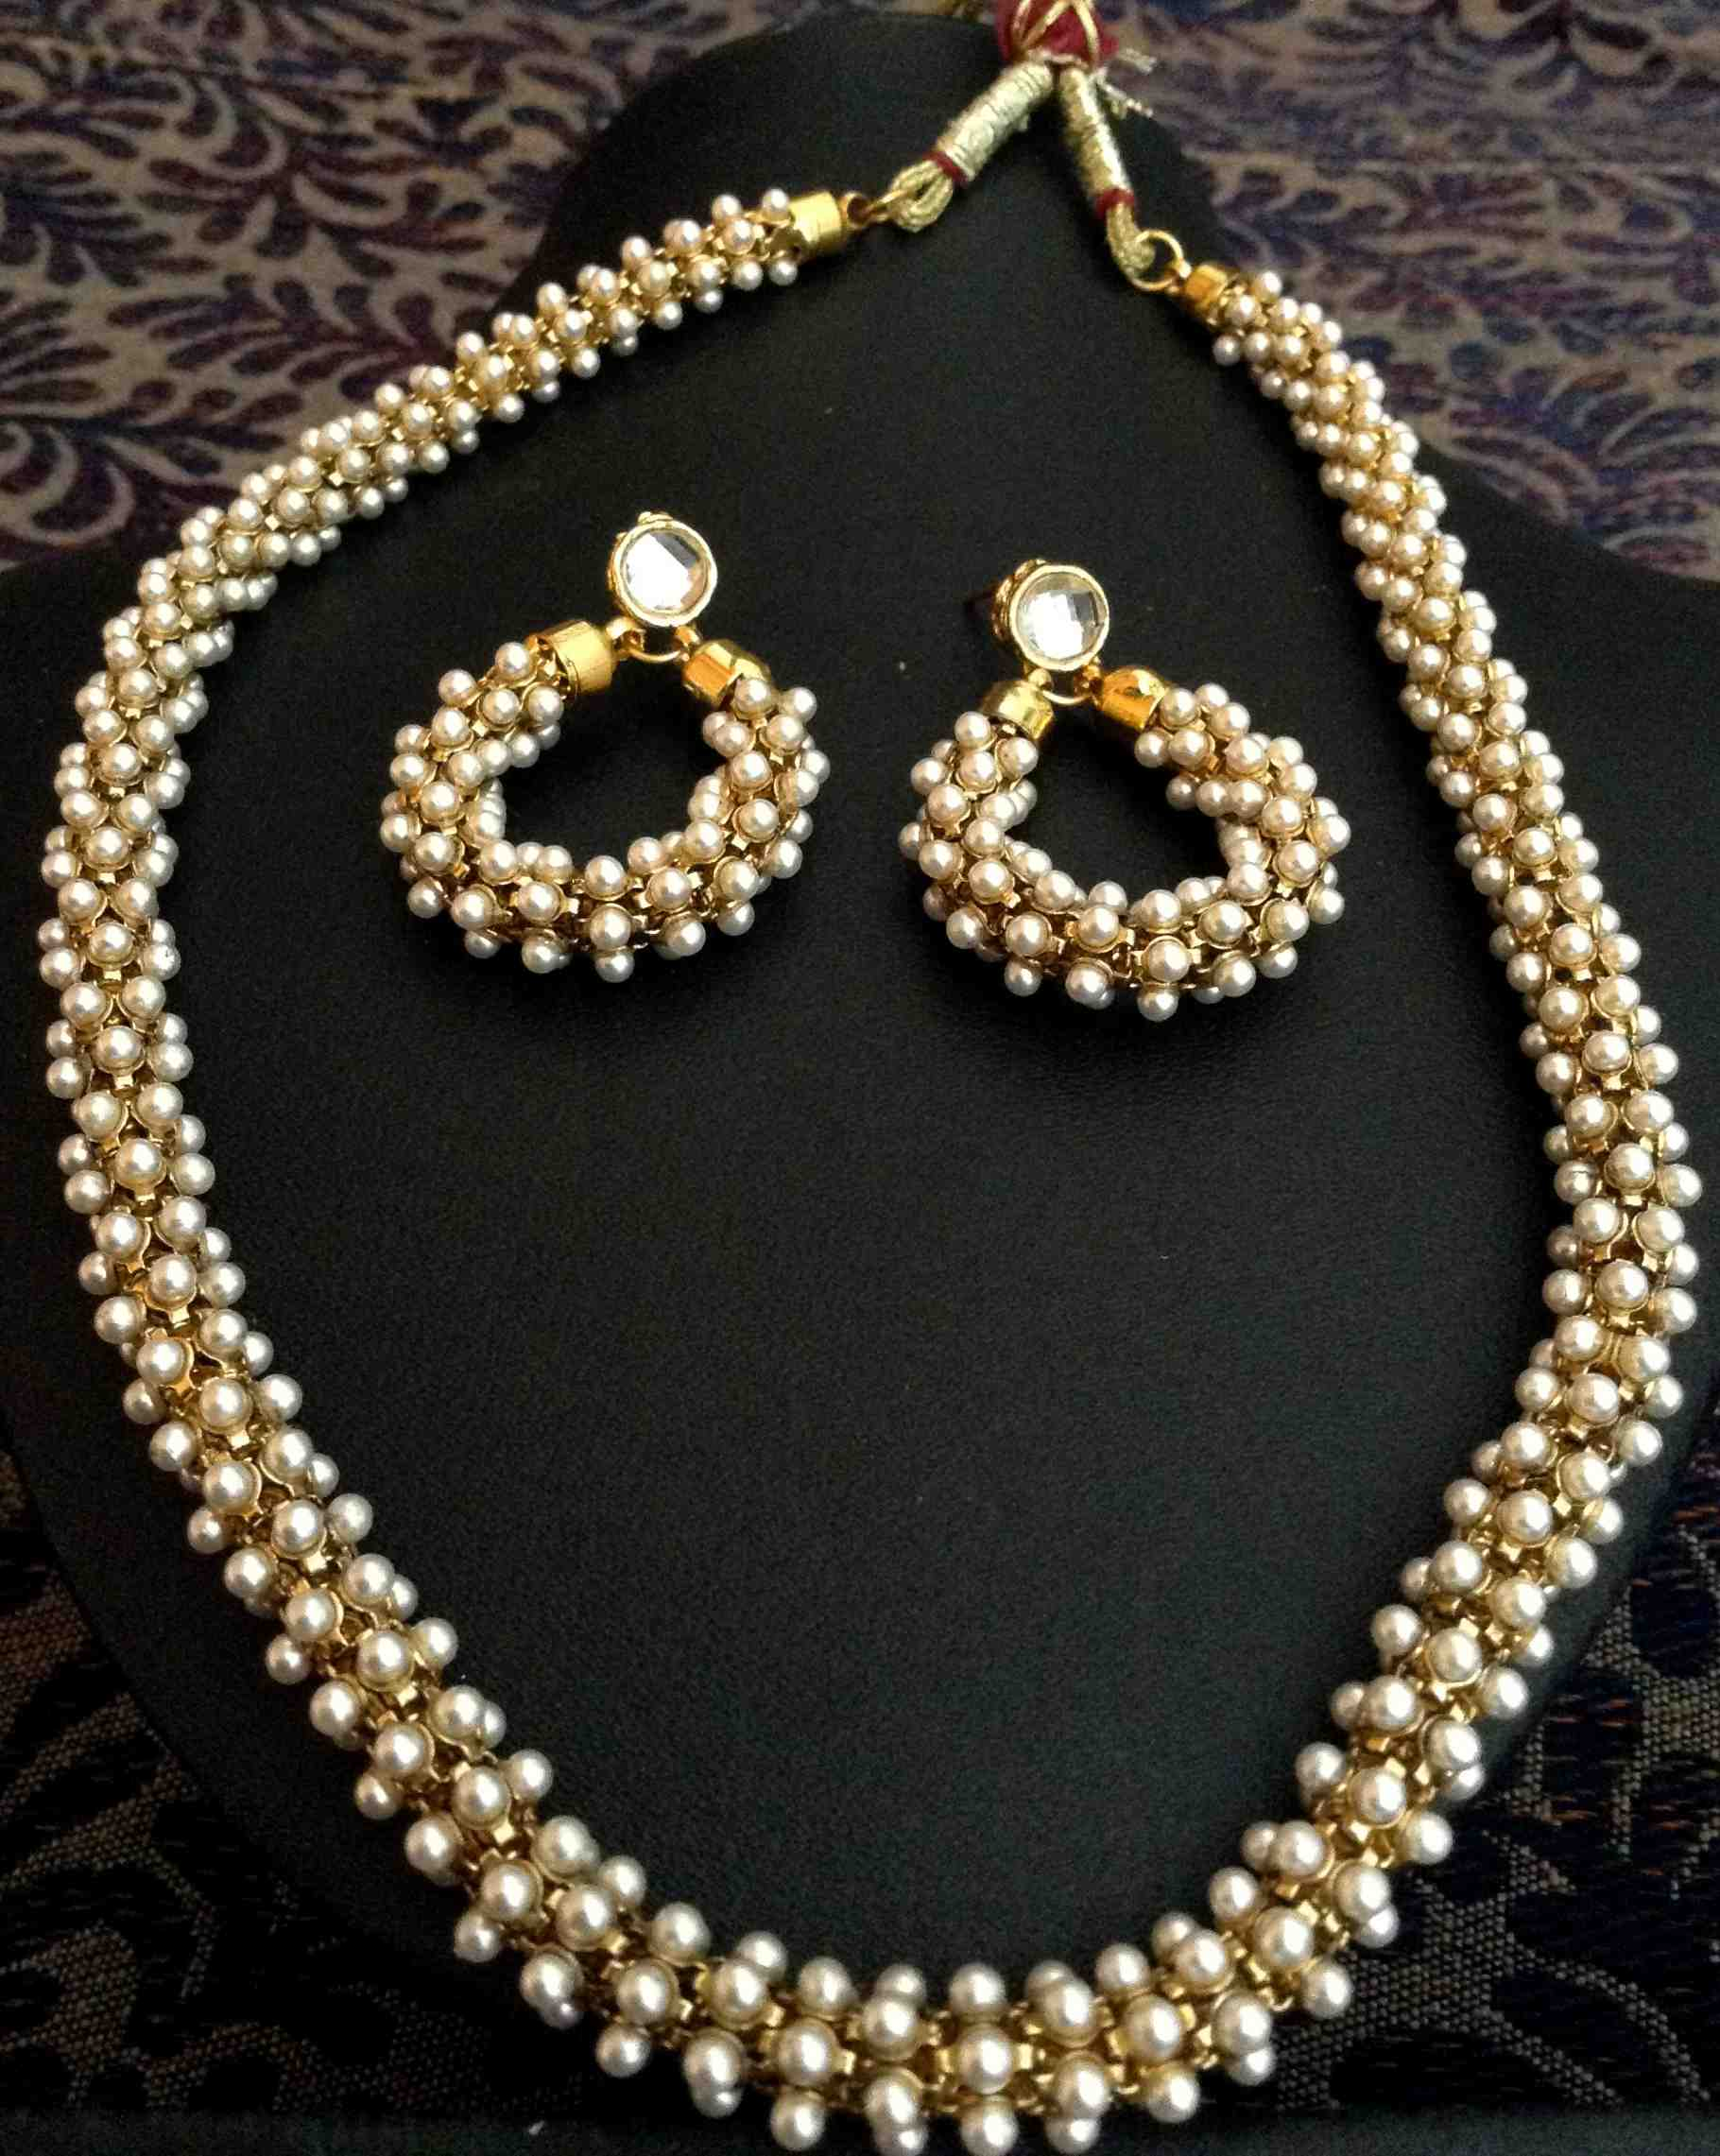 ddbe7dac938 Beautiful Chandni Pearls Woven in Golden Metal Indian Pearl Necklace Set  d20 - Dancing Girl - 166055